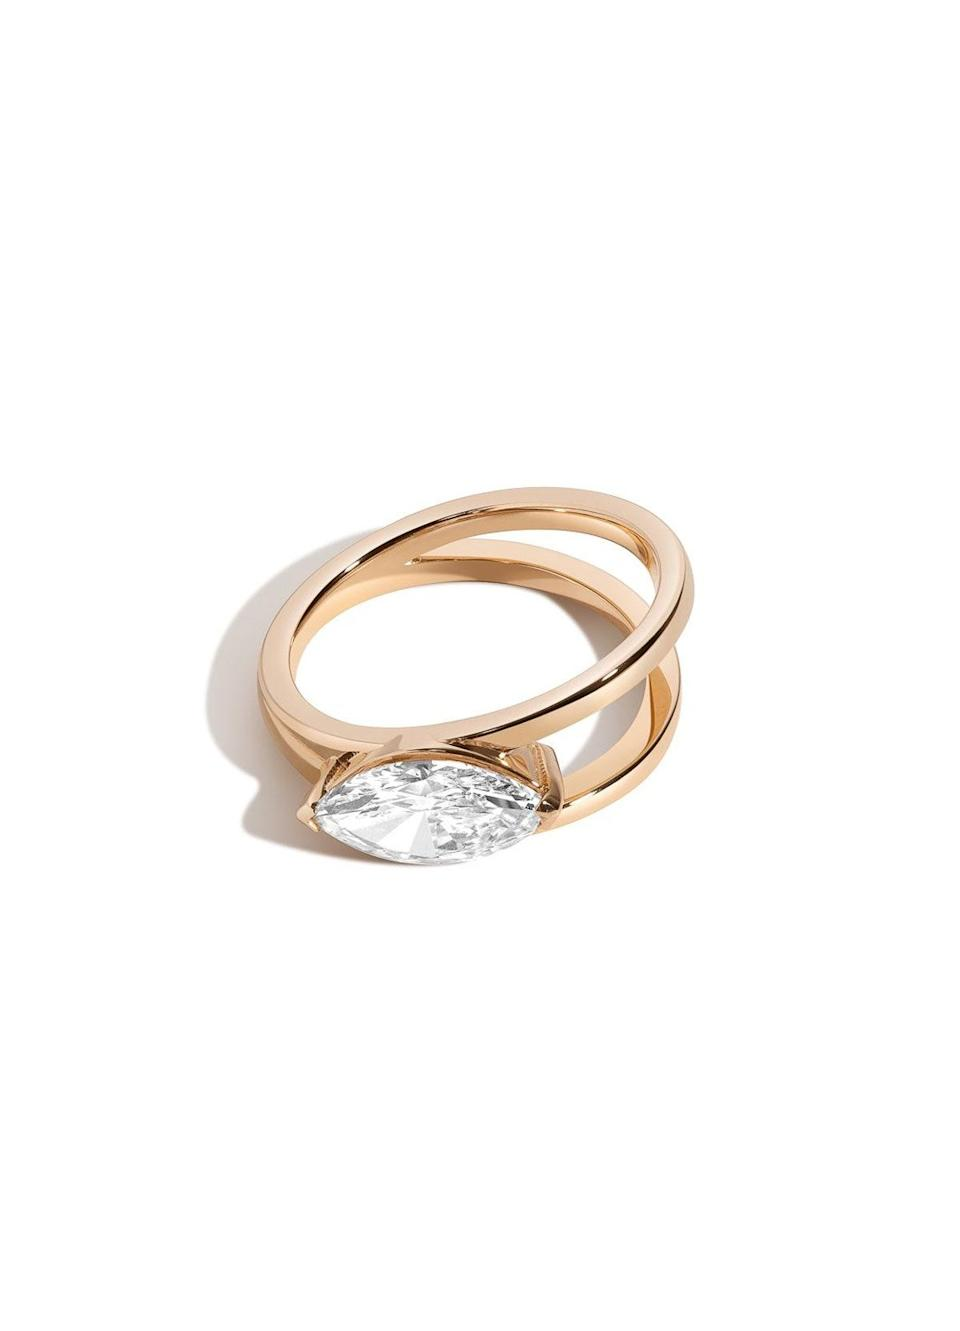 """Oblong cuts (like ovals and pears) have seen a resurgence in the past few years, and right now customers are gravitating to a marquise-cut, which is pointed at both ends. $890, Shahla Karimi. <a href=""""https://shahlakarimi.com/collections/rings/products/marquise-v-ring"""" rel=""""nofollow noopener"""" target=""""_blank"""" data-ylk=""""slk:Get it now!"""" class=""""link rapid-noclick-resp"""">Get it now!</a>"""